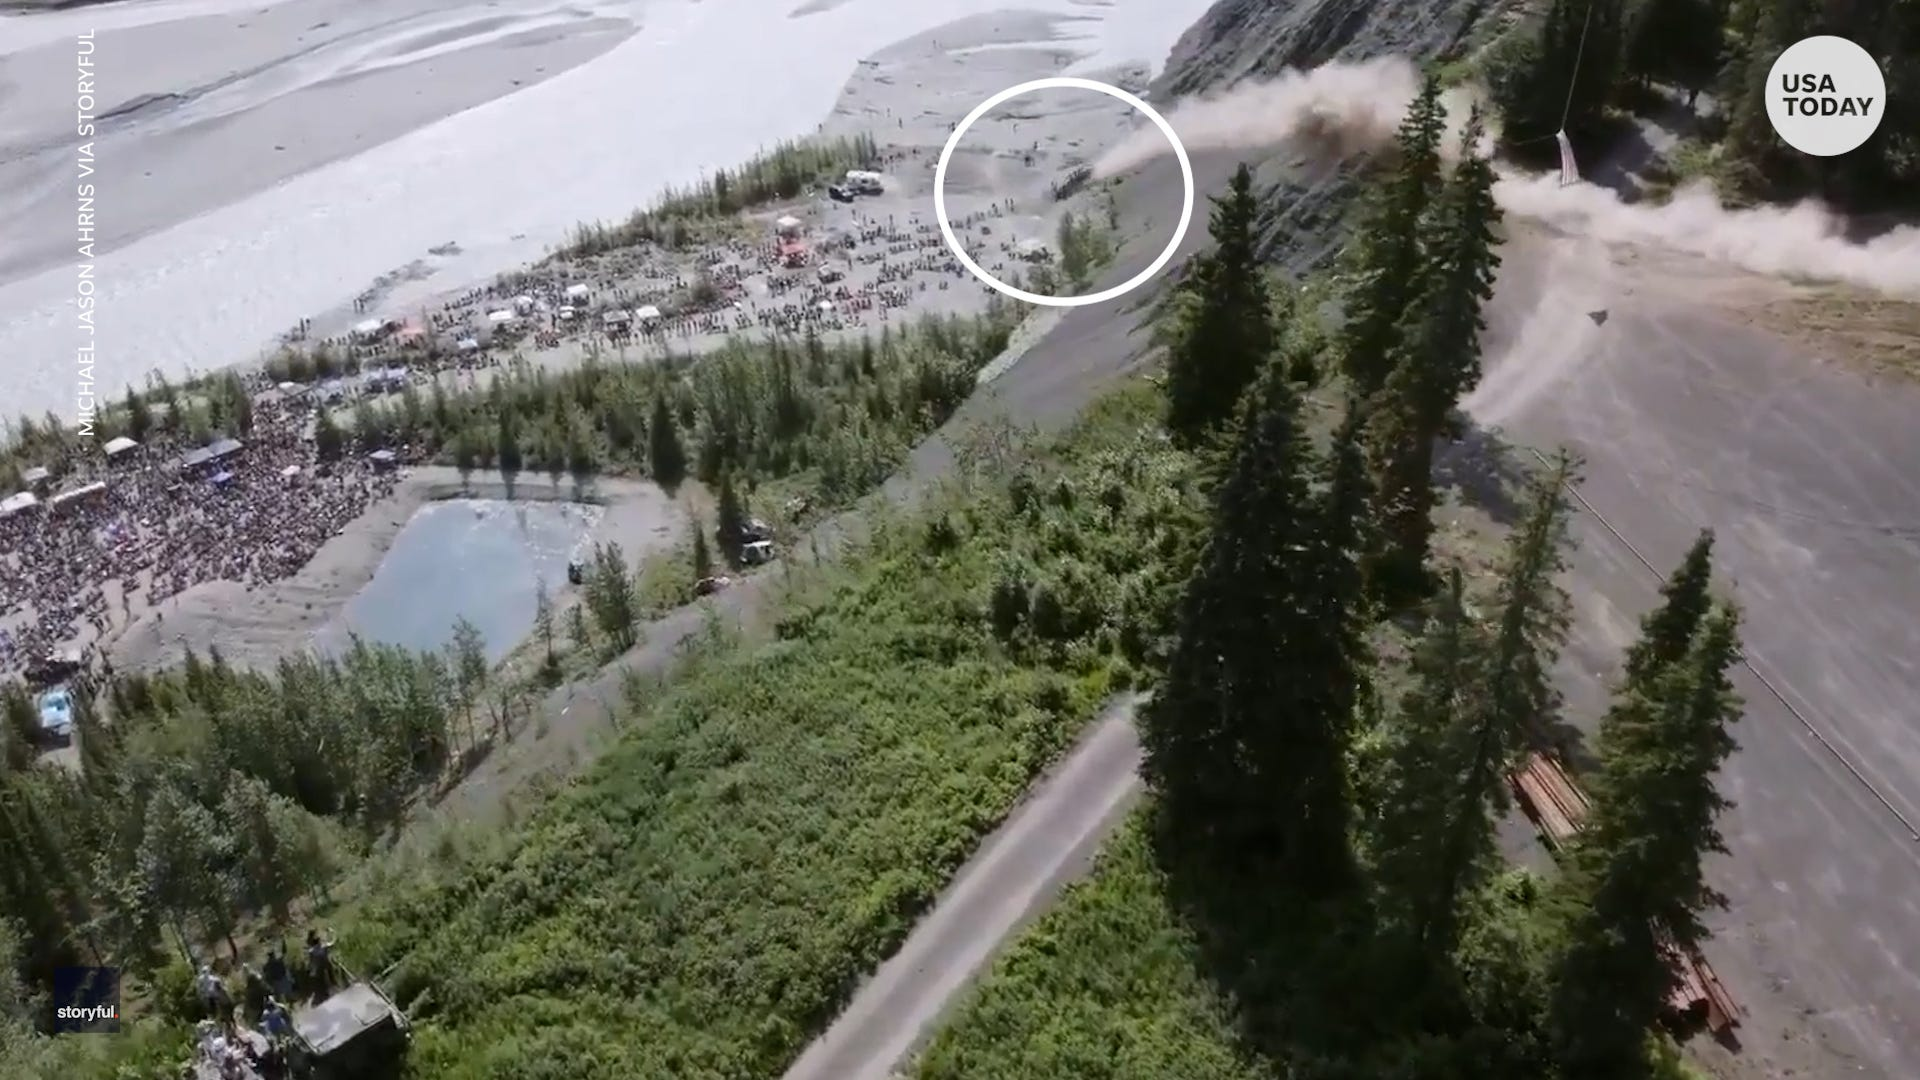 Launching cars off 300-foot cliff is an annual tradition in this small town